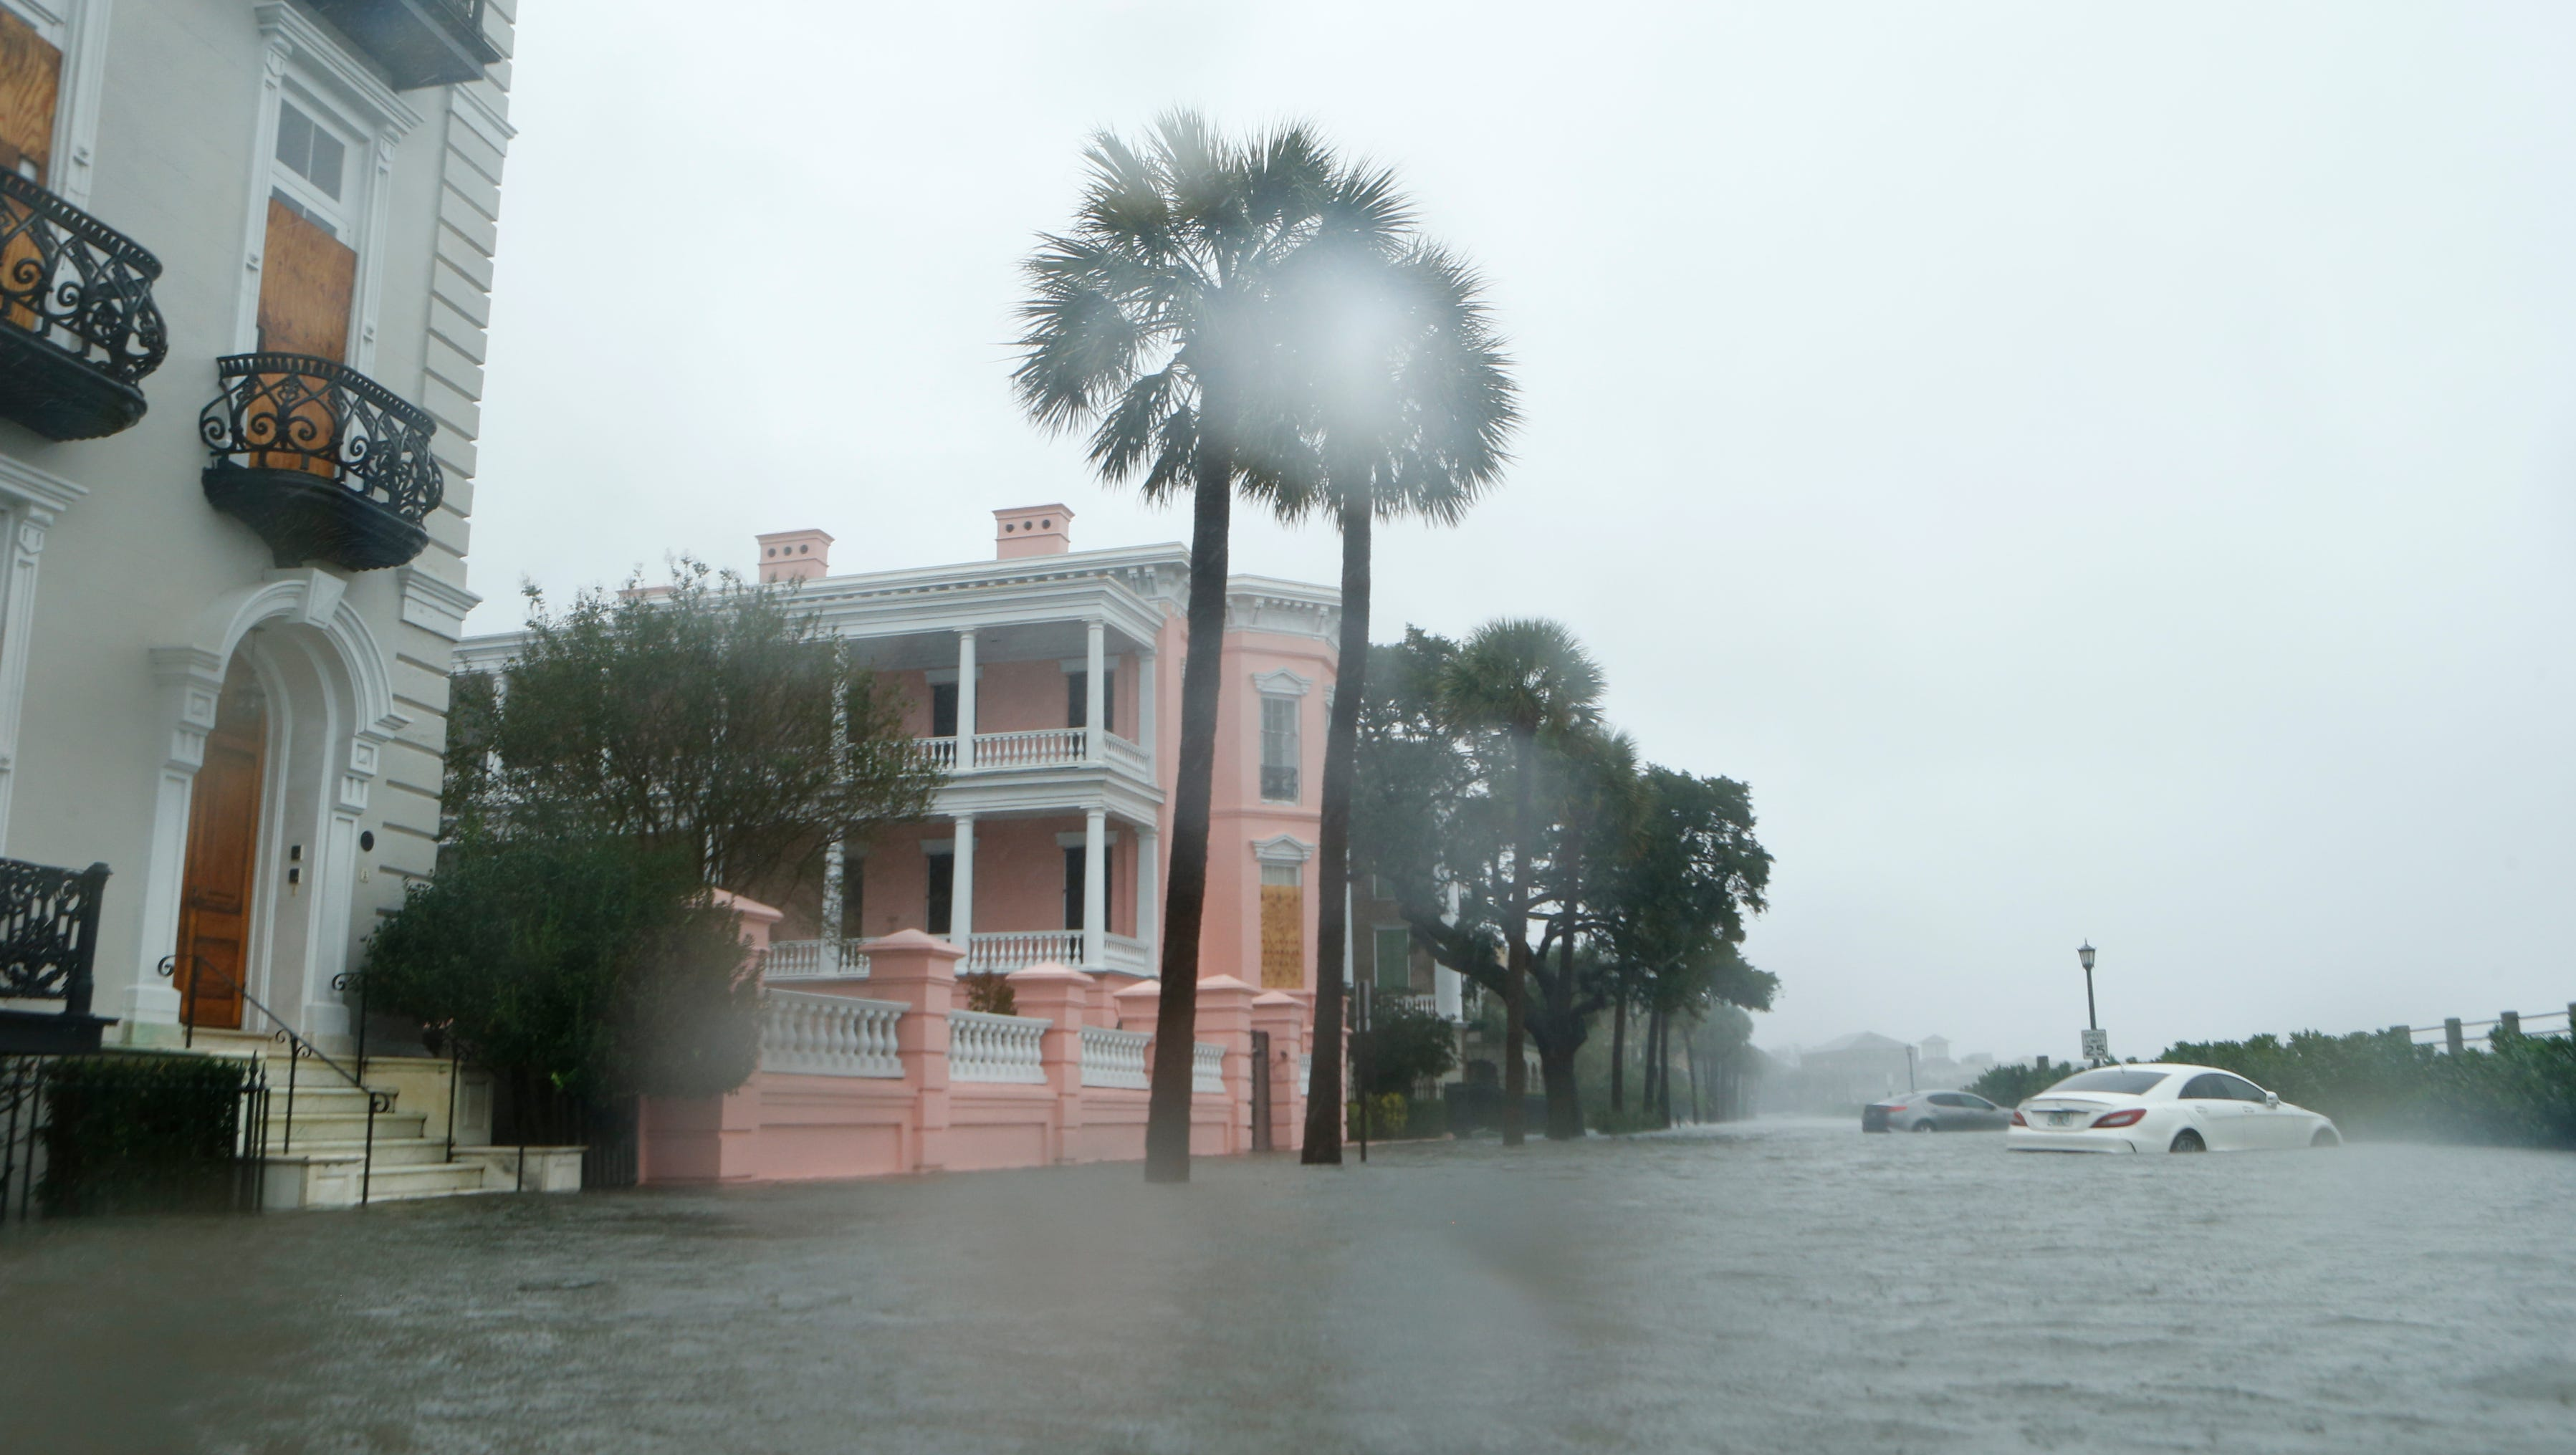 Hurricane Matthew's eye now past the Golden Isles